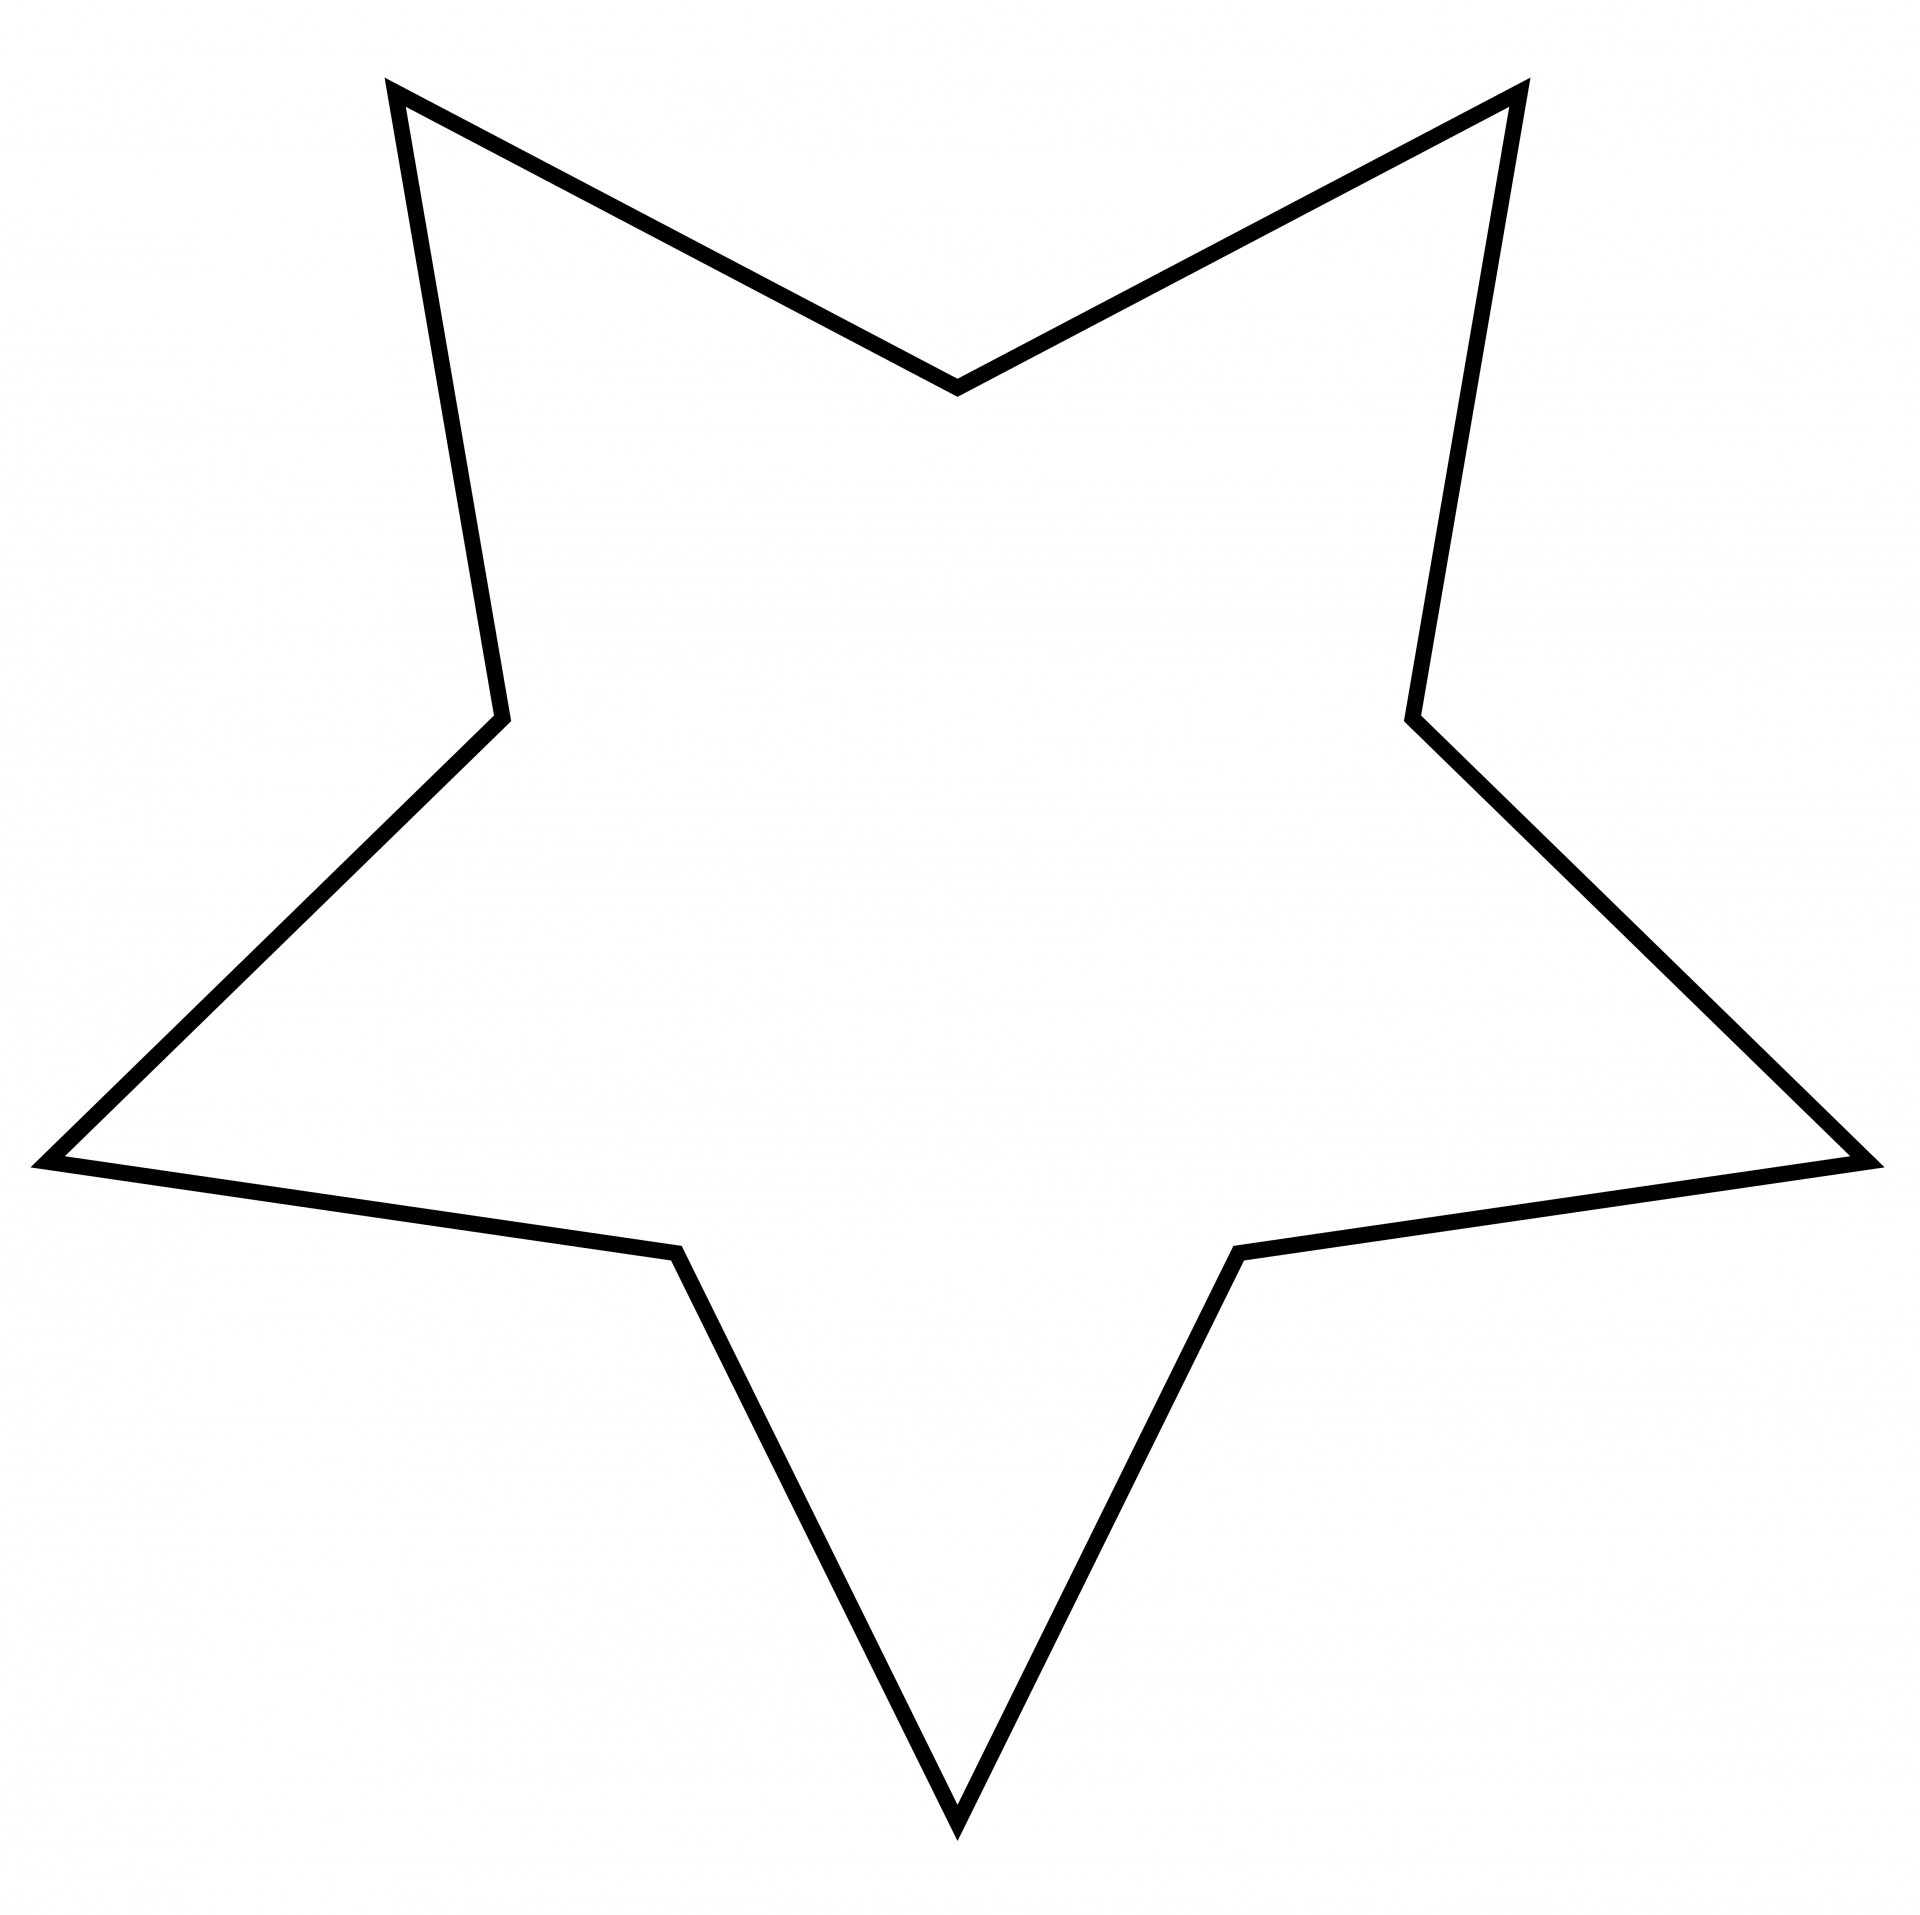 Star jpg clipart svg transparent stock Star Outline Clipart Free Stock Photo - Public Domain Pictures svg transparent stock